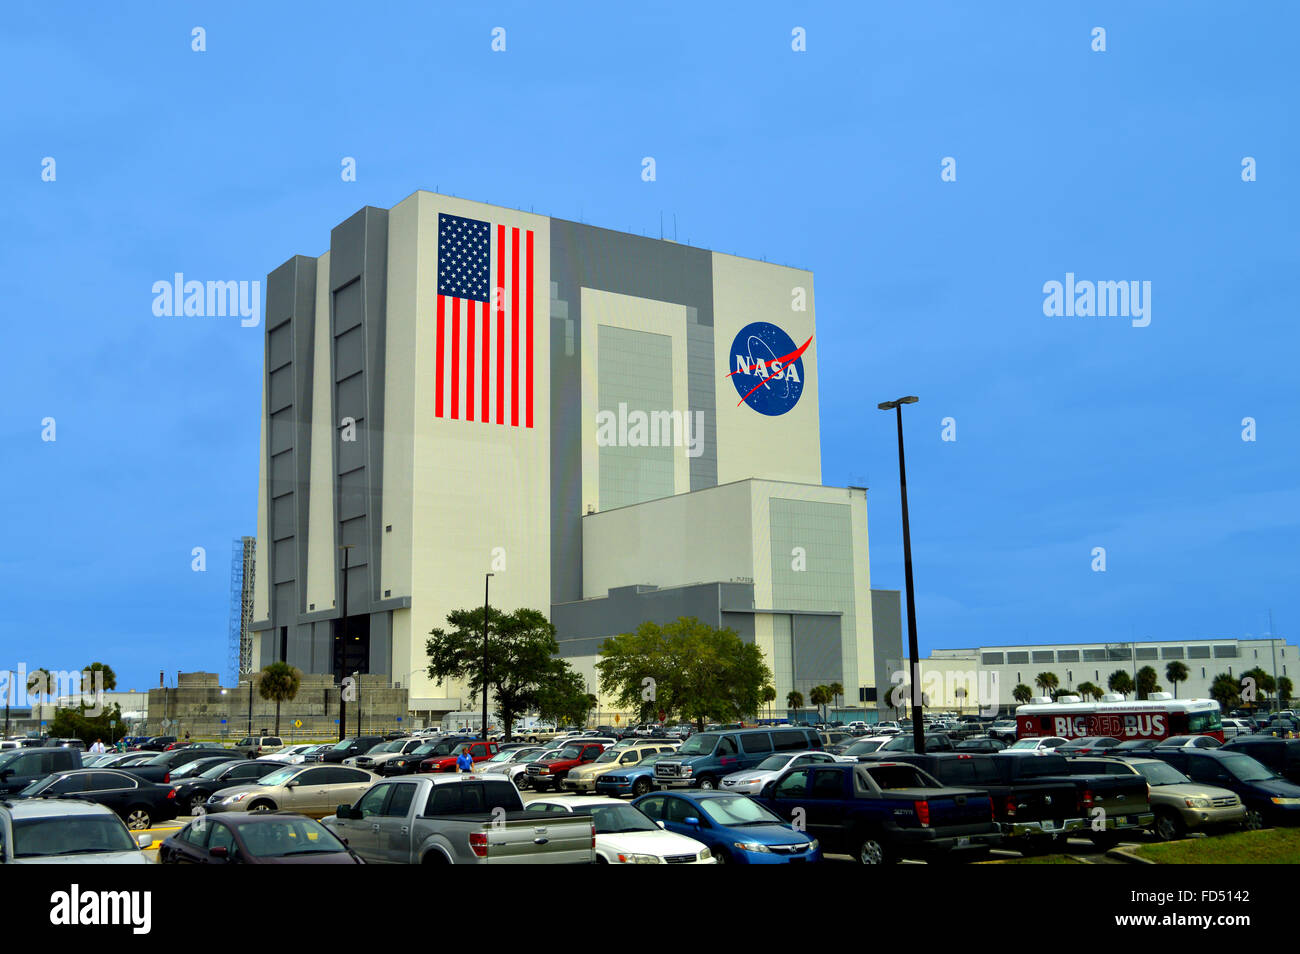 NASA Vehicle Assembly Building at Kennedy Space Center - Stock Image